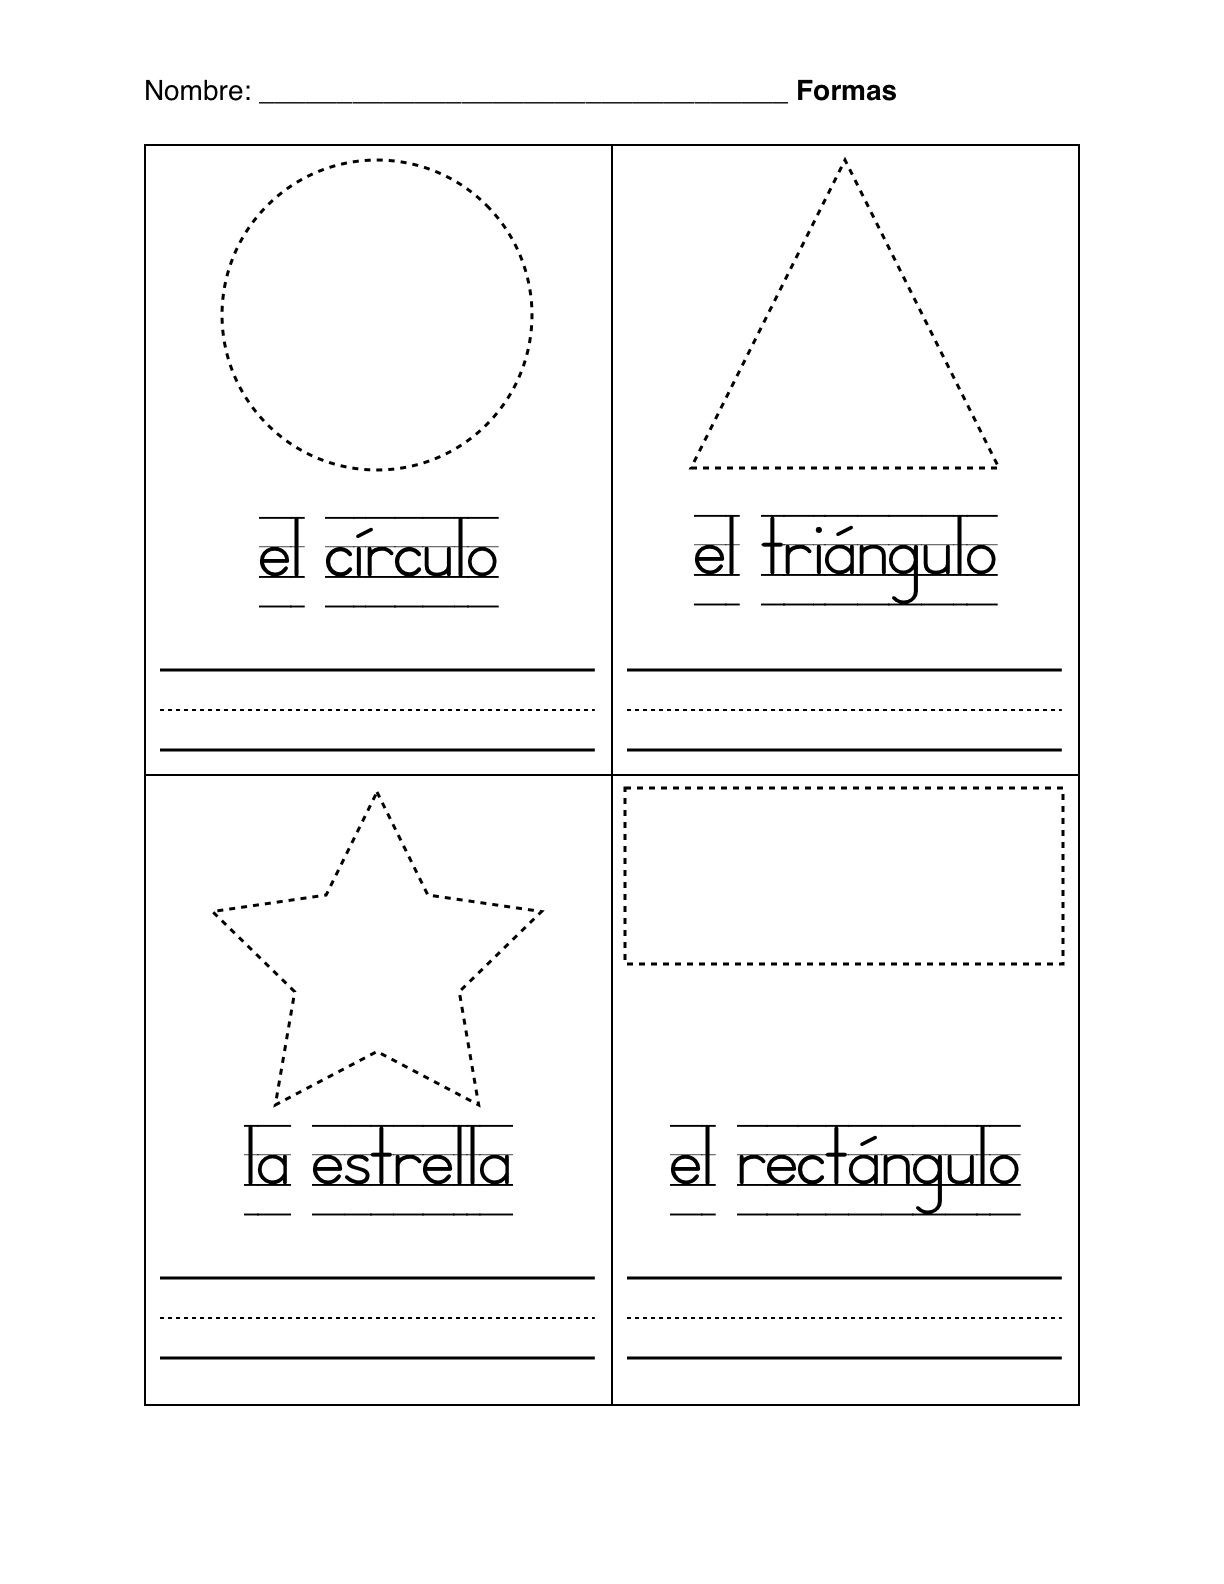 Spanish worksheets for kindergarten basic shapes in spanish spanish worksheets for kindergarten basic shapes in spanish formas basicas worksheet robcynllc Gallery